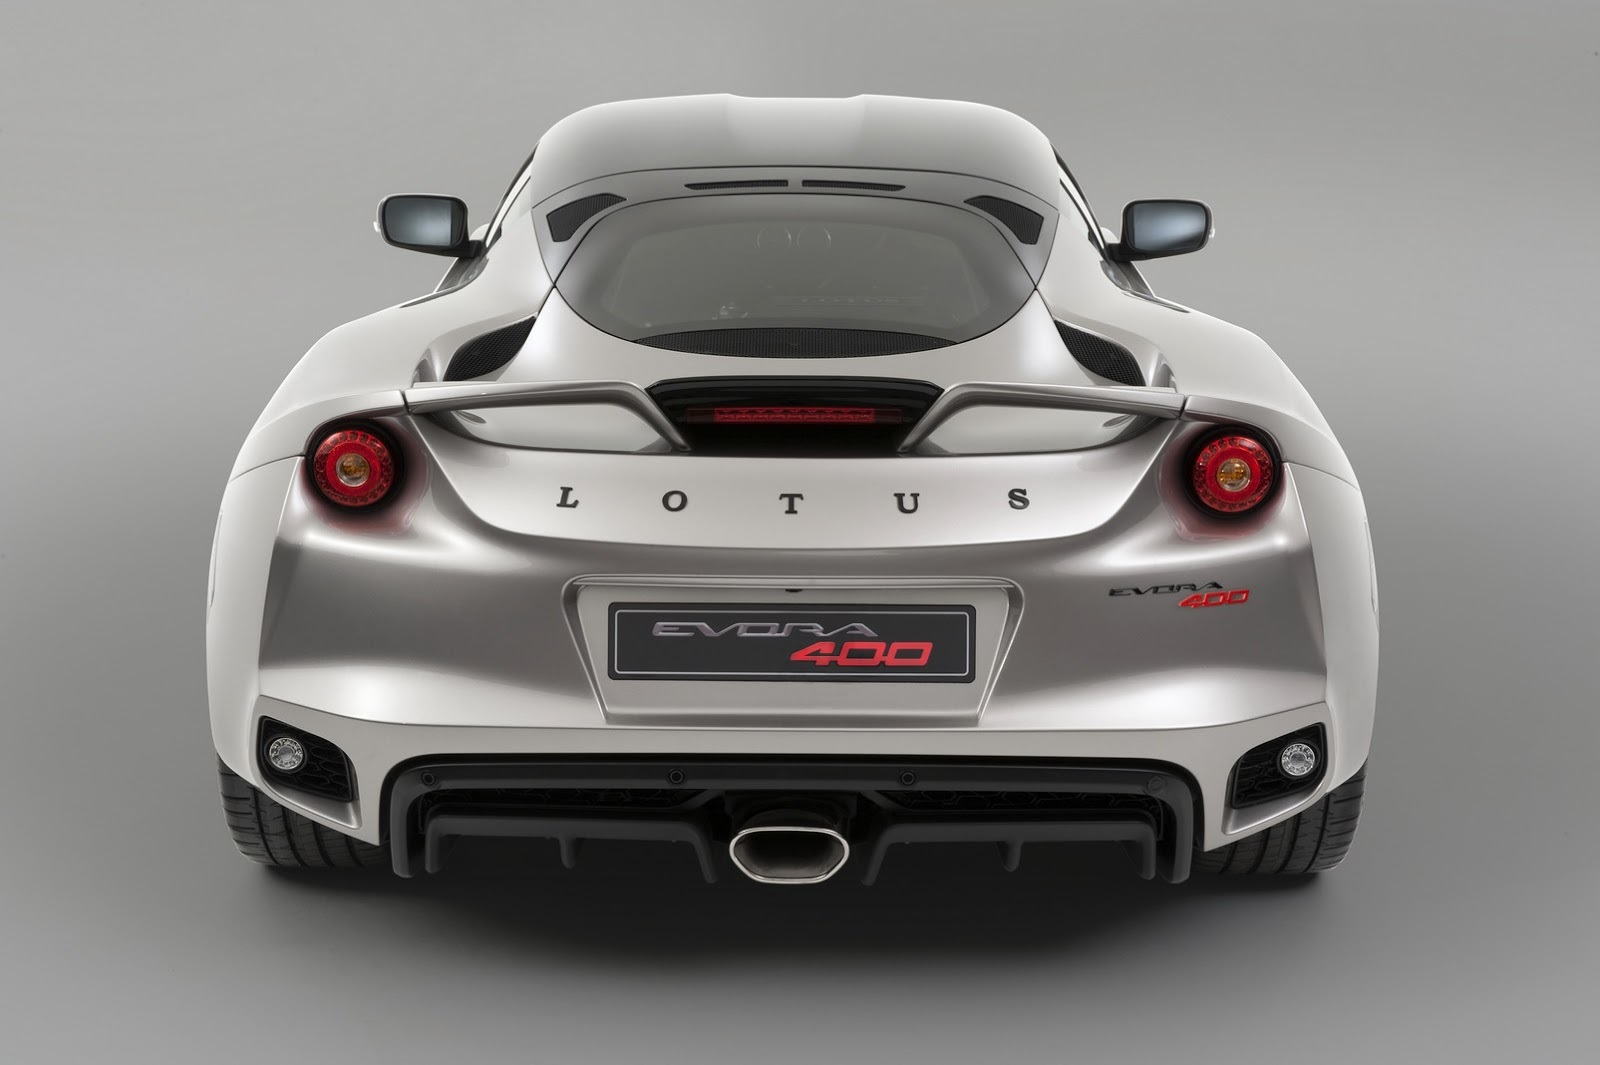 Lotus Evora Facelift (2015) 9